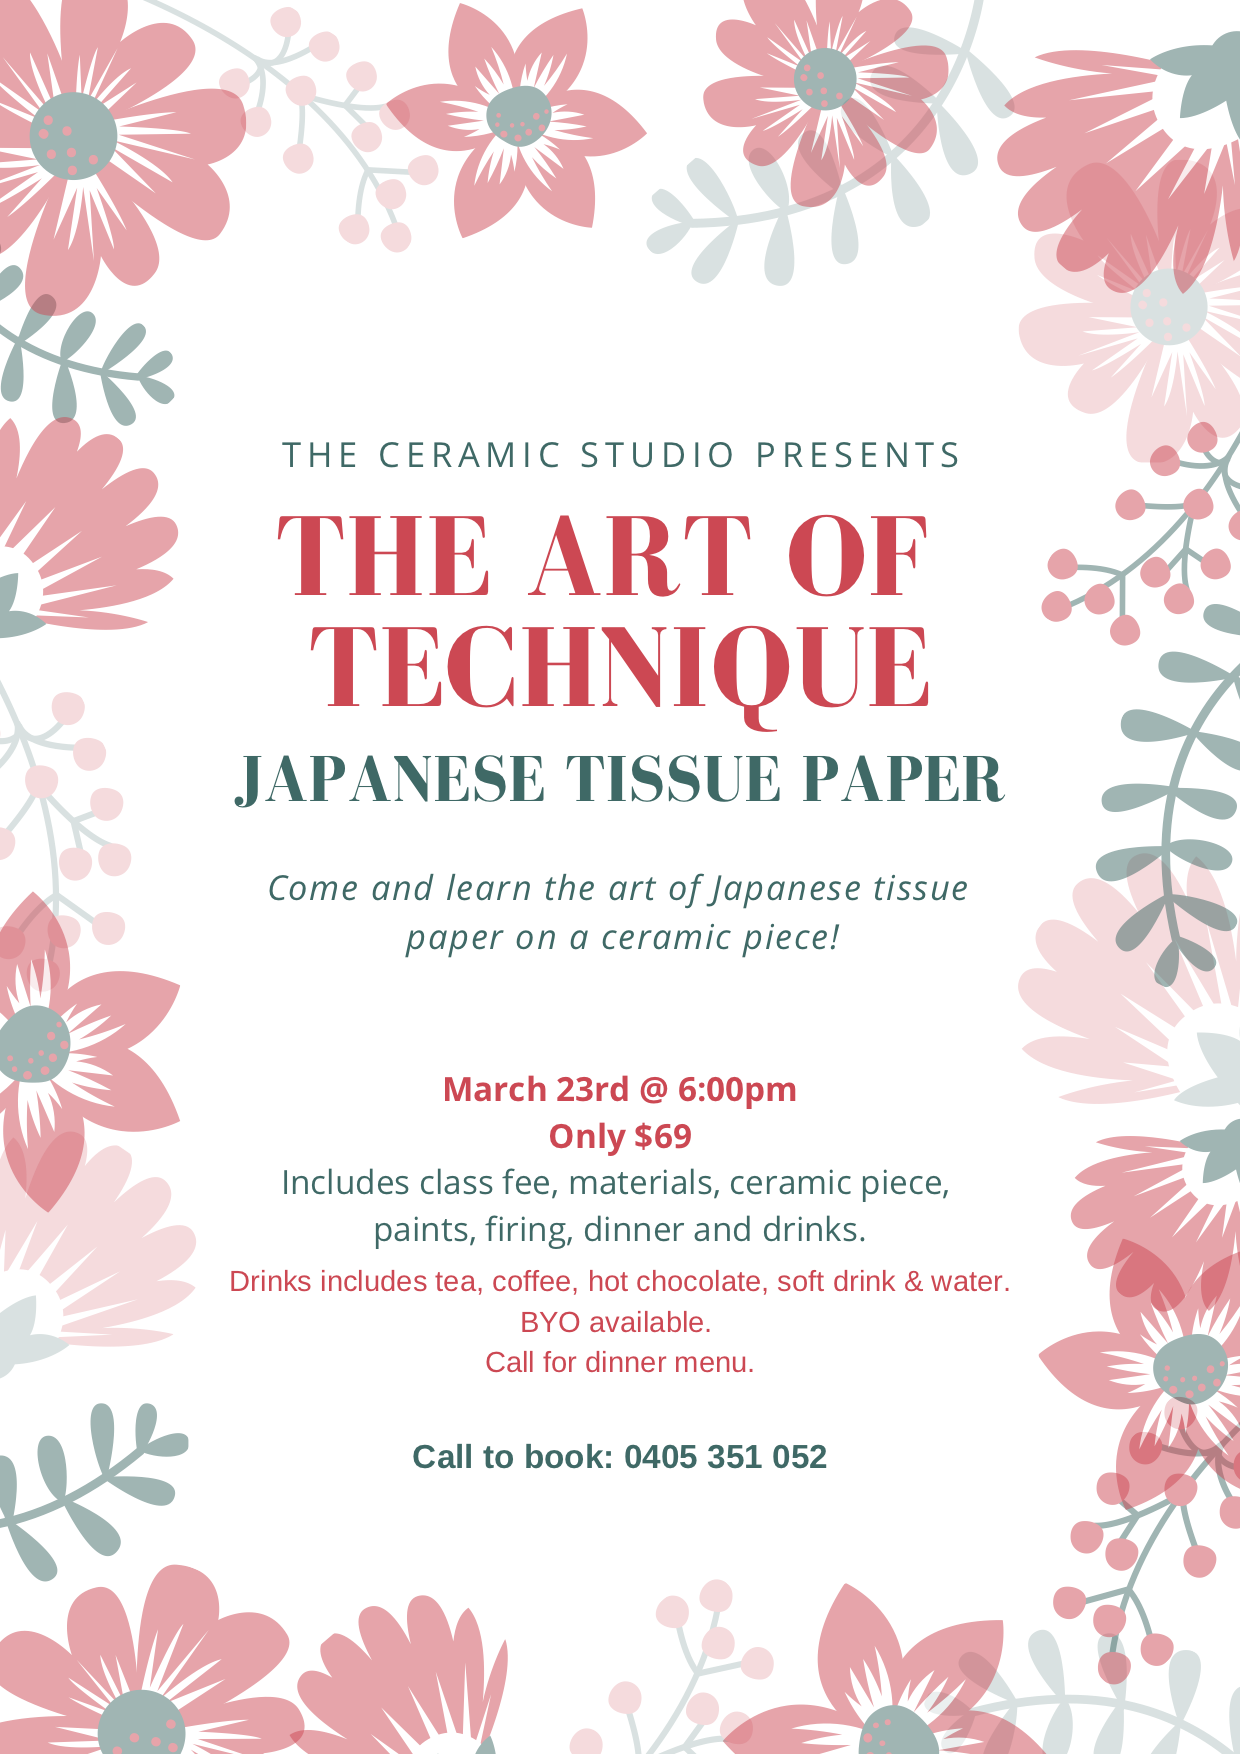 Japanese Tissue Paper | The Ceramic Studio